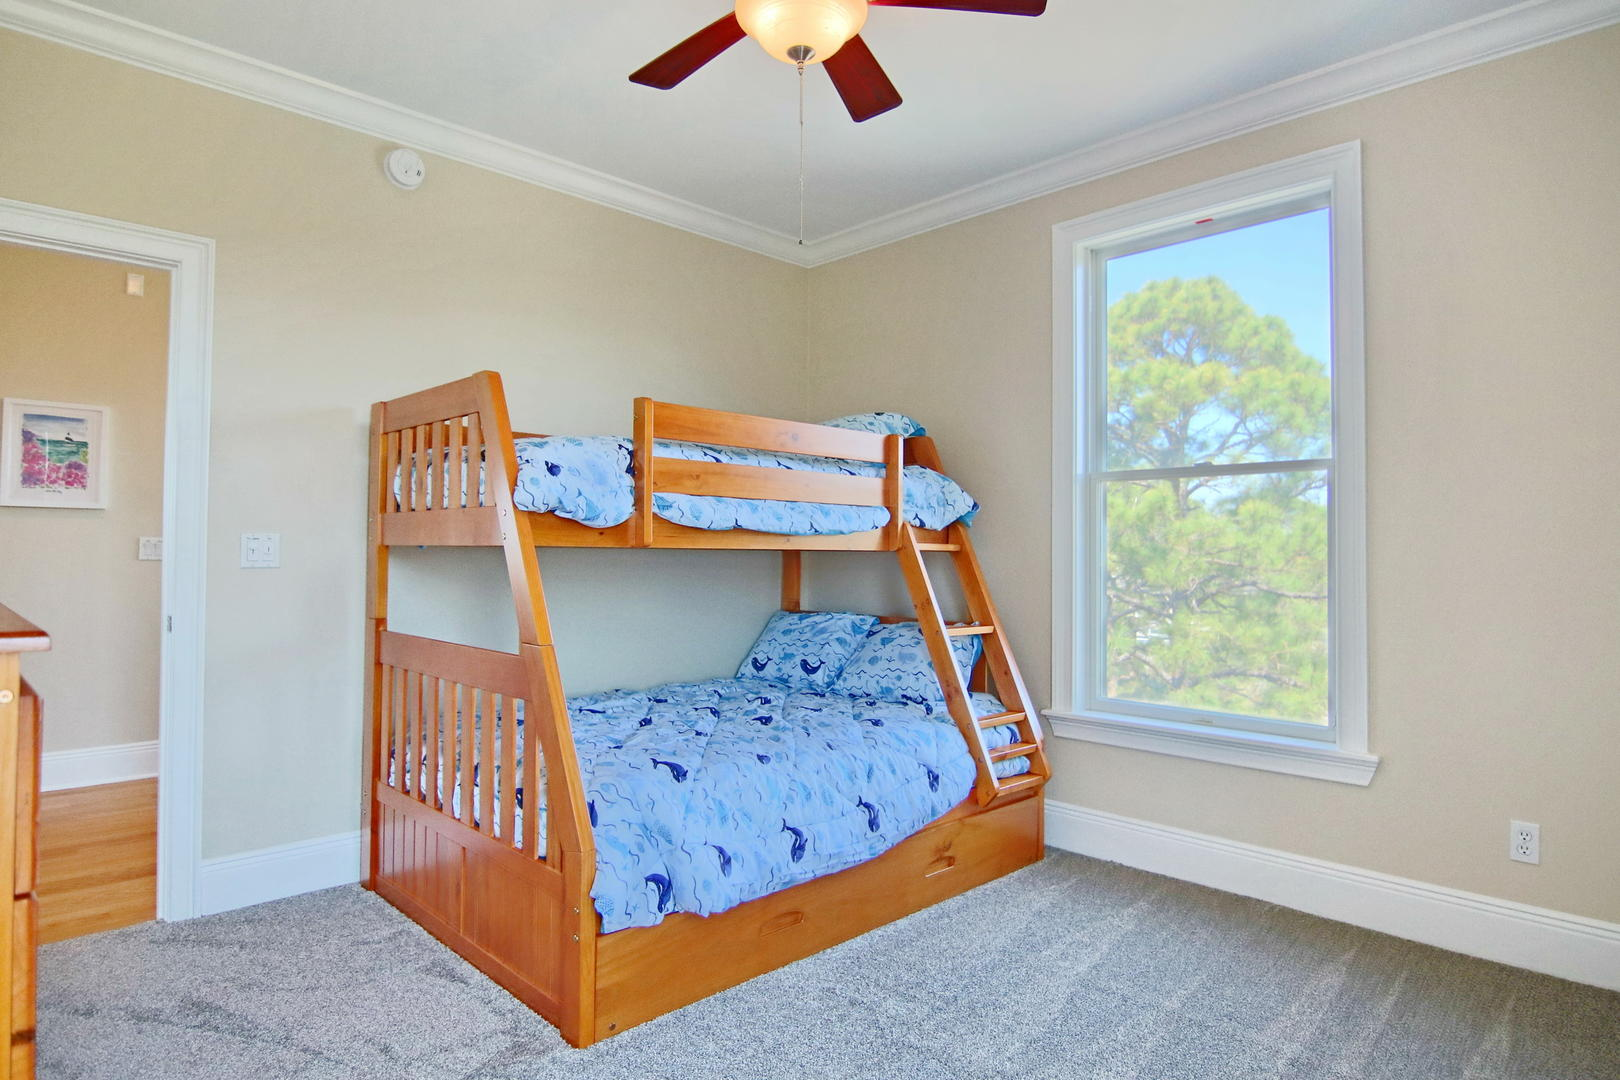 The kids will not be able to contain their excitment when they find out they have their very own room!